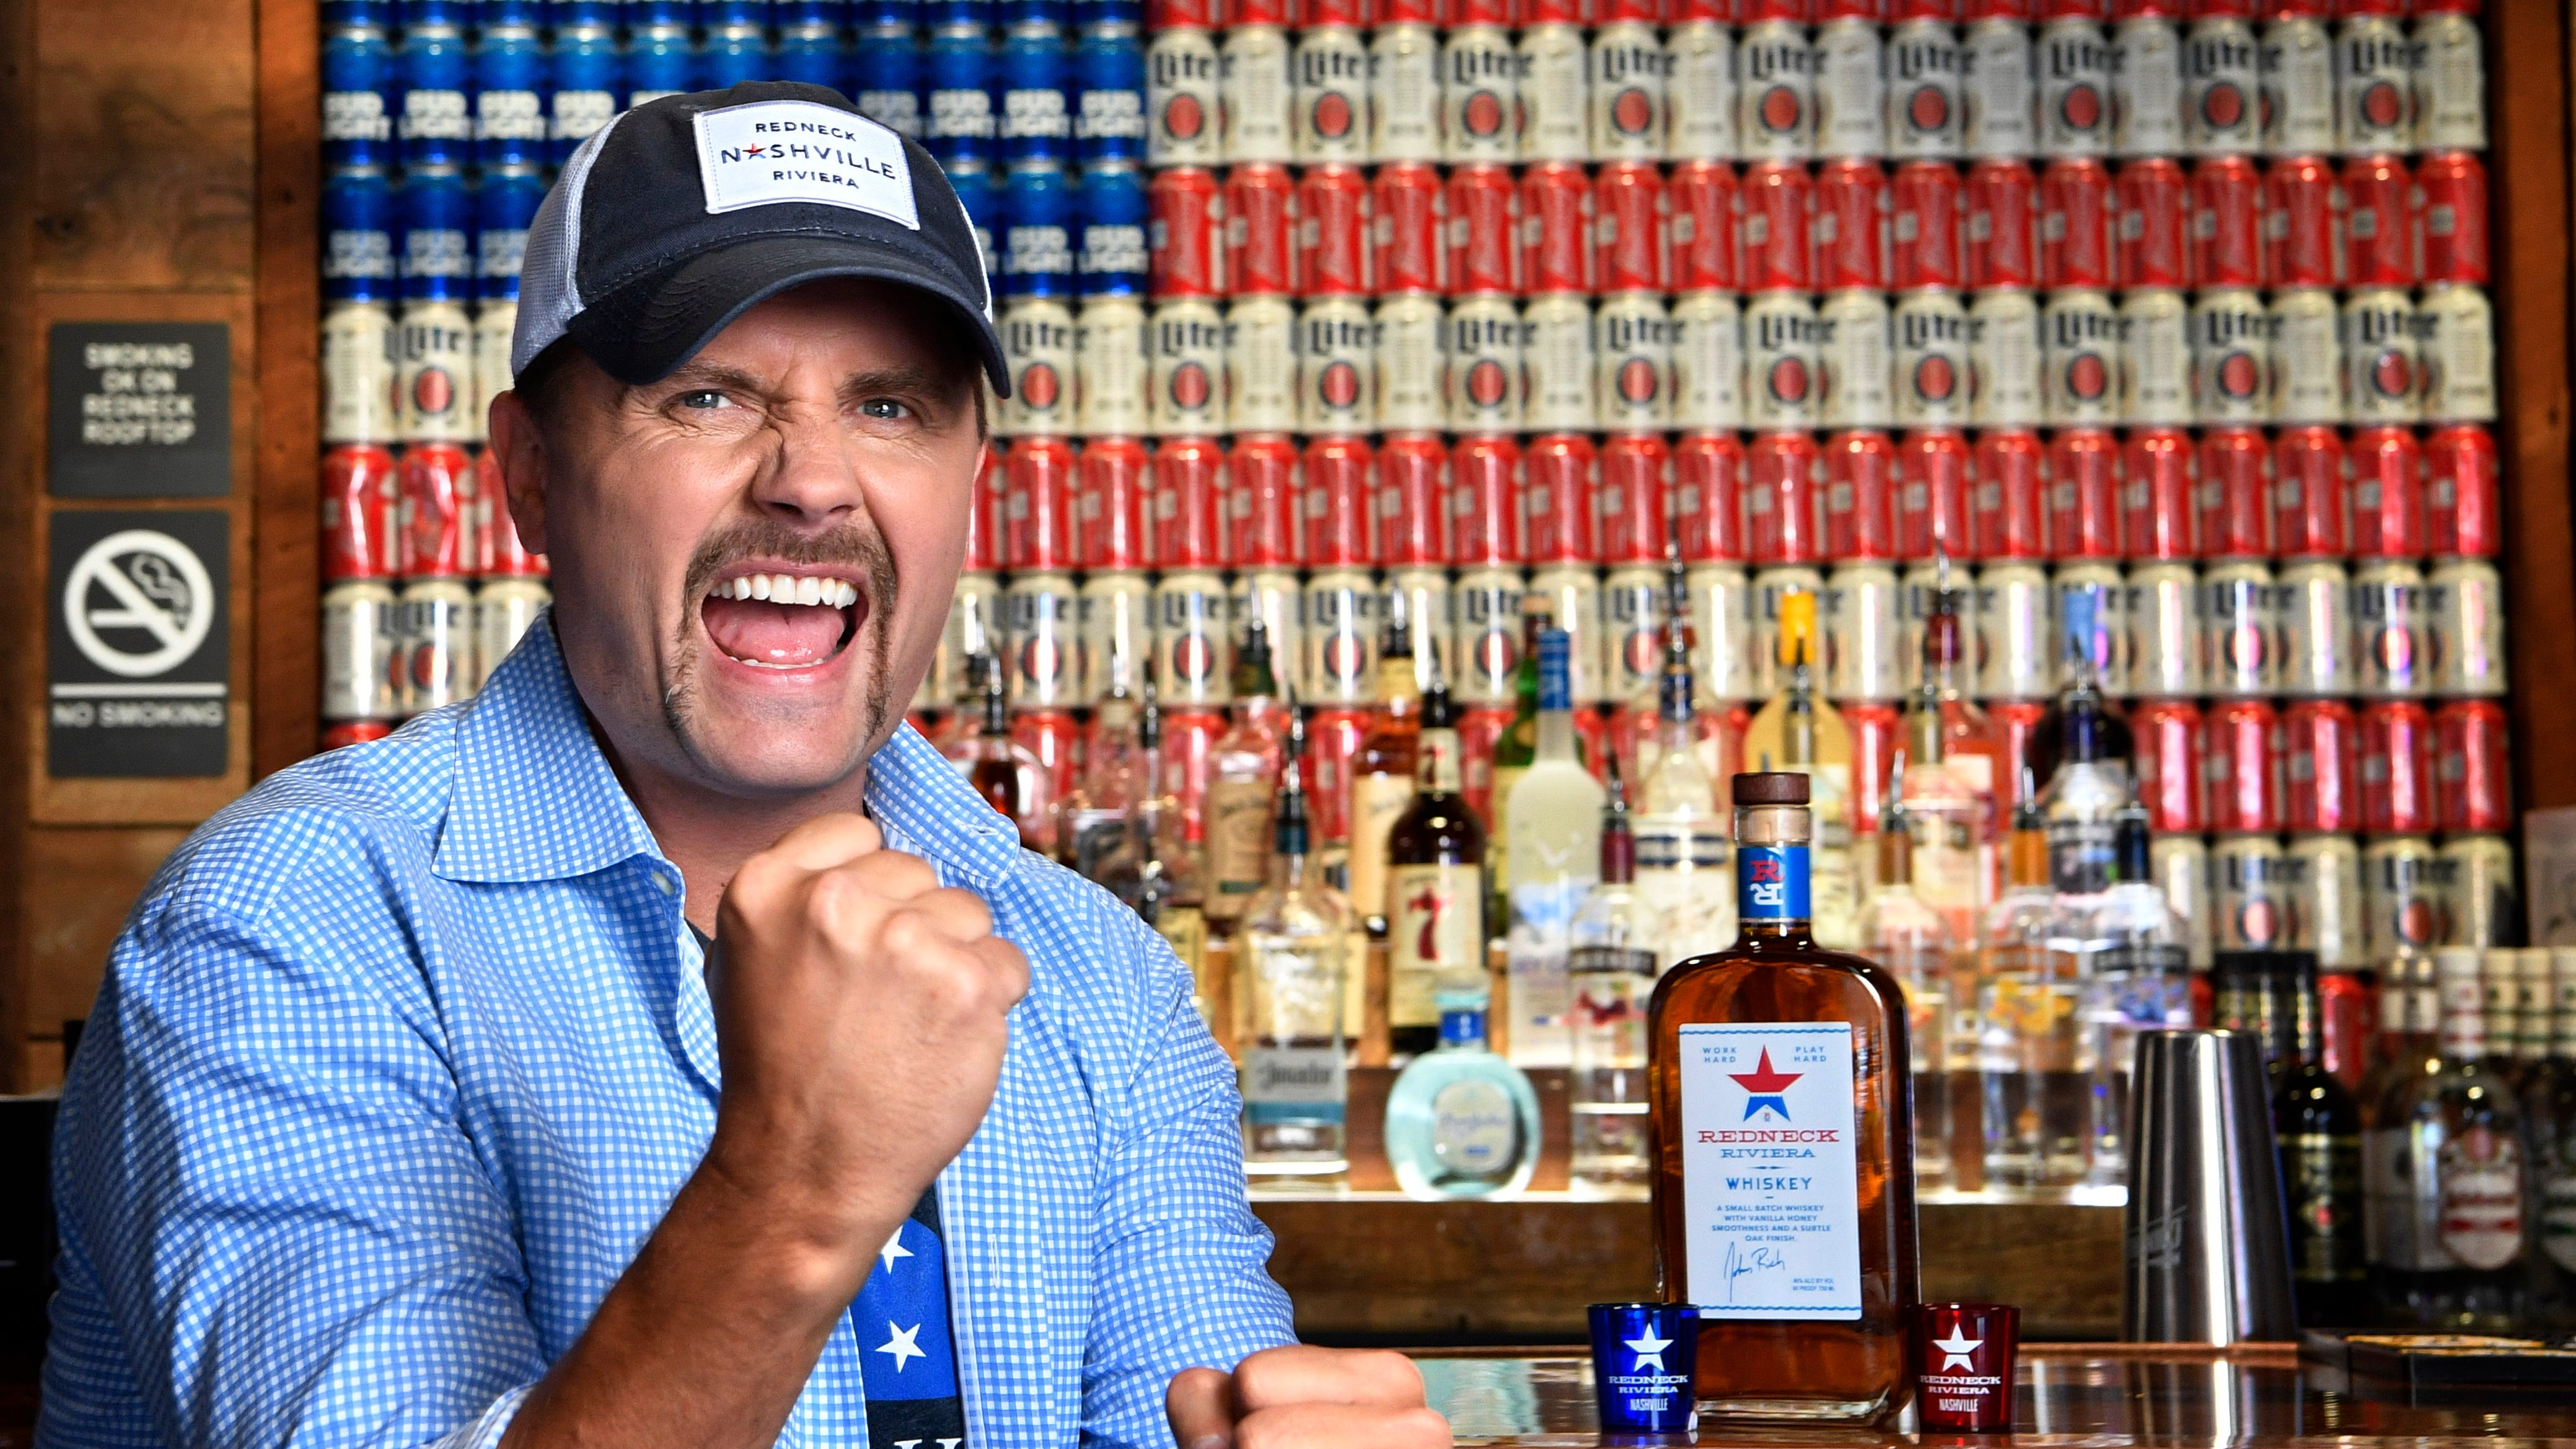 John Rich is excited about the opening of his new bar,  Redneck Riviera at 208 BroadwayWednesday July 11, 2018, in Nashville, Tenn.